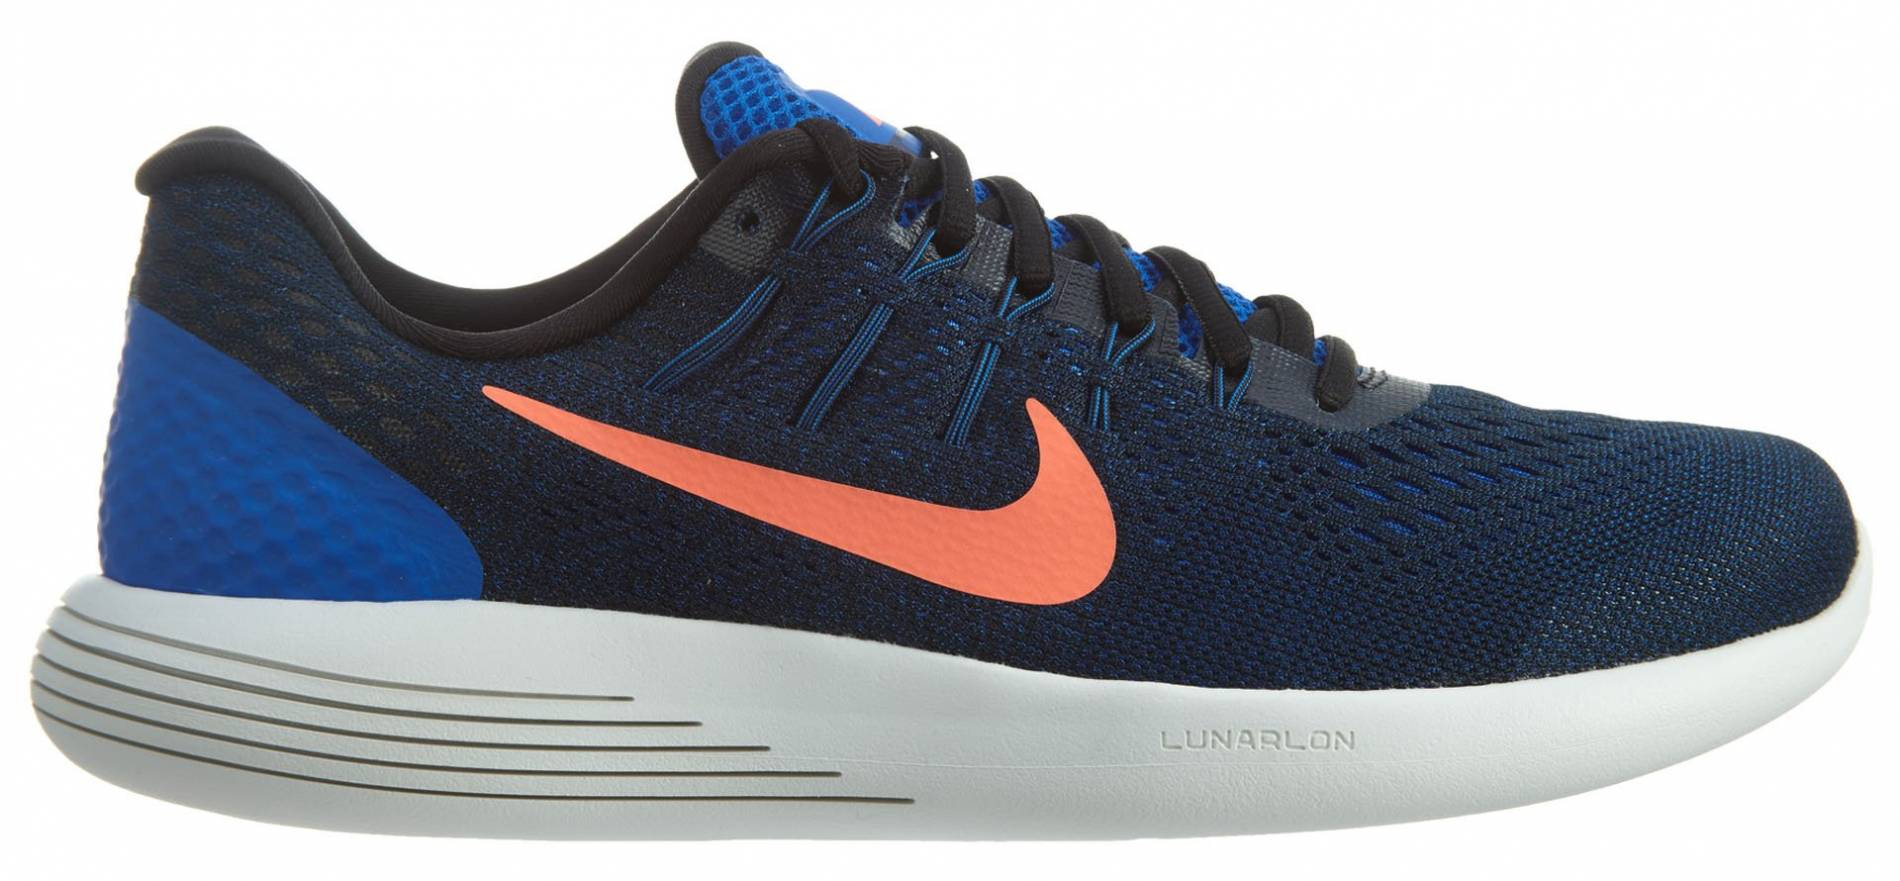 Only $113 + Review of Nike LunarGlide 8